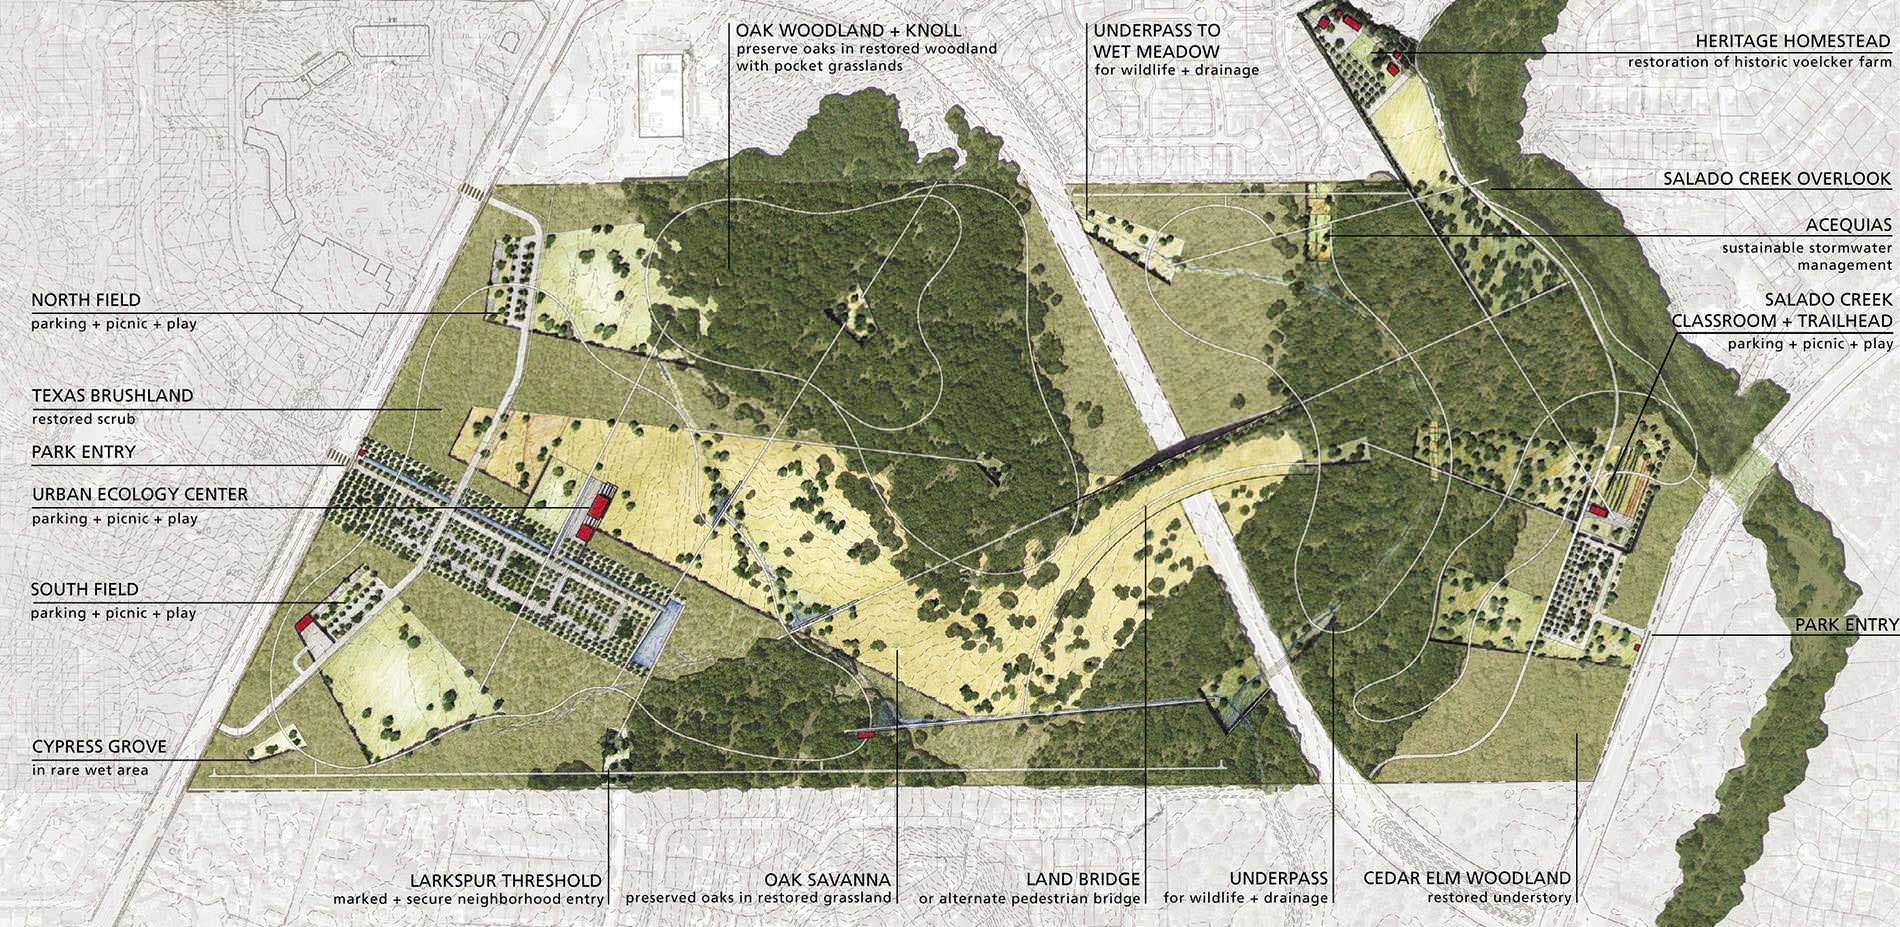 Phil Hardberger Park 2015 ASLA Professional Awards